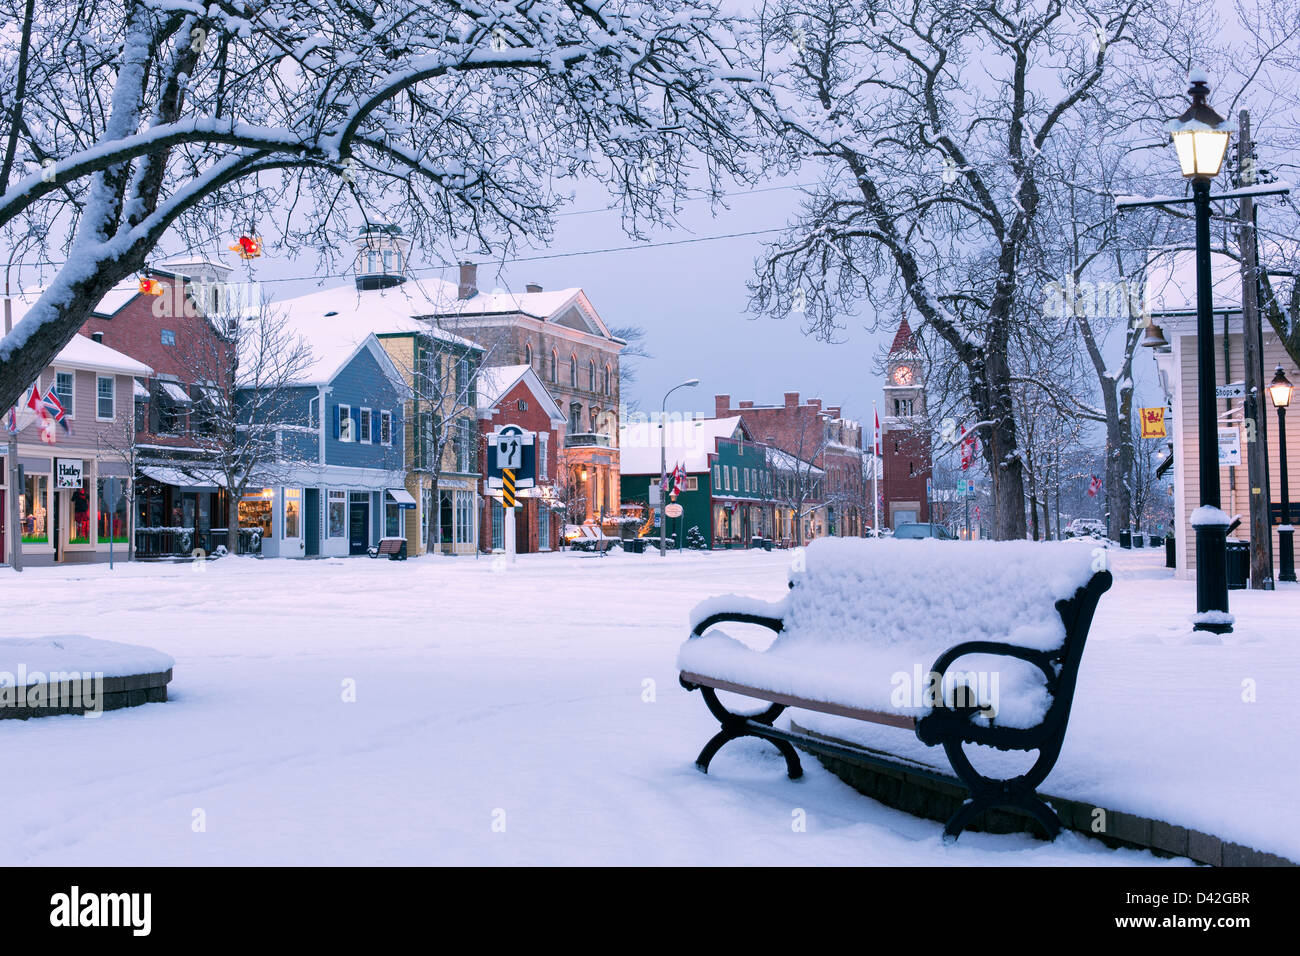 Kanada, Ontario, Niagara-on-the-Lake, Queen Street, dem frühen Winter morgen Stockbild